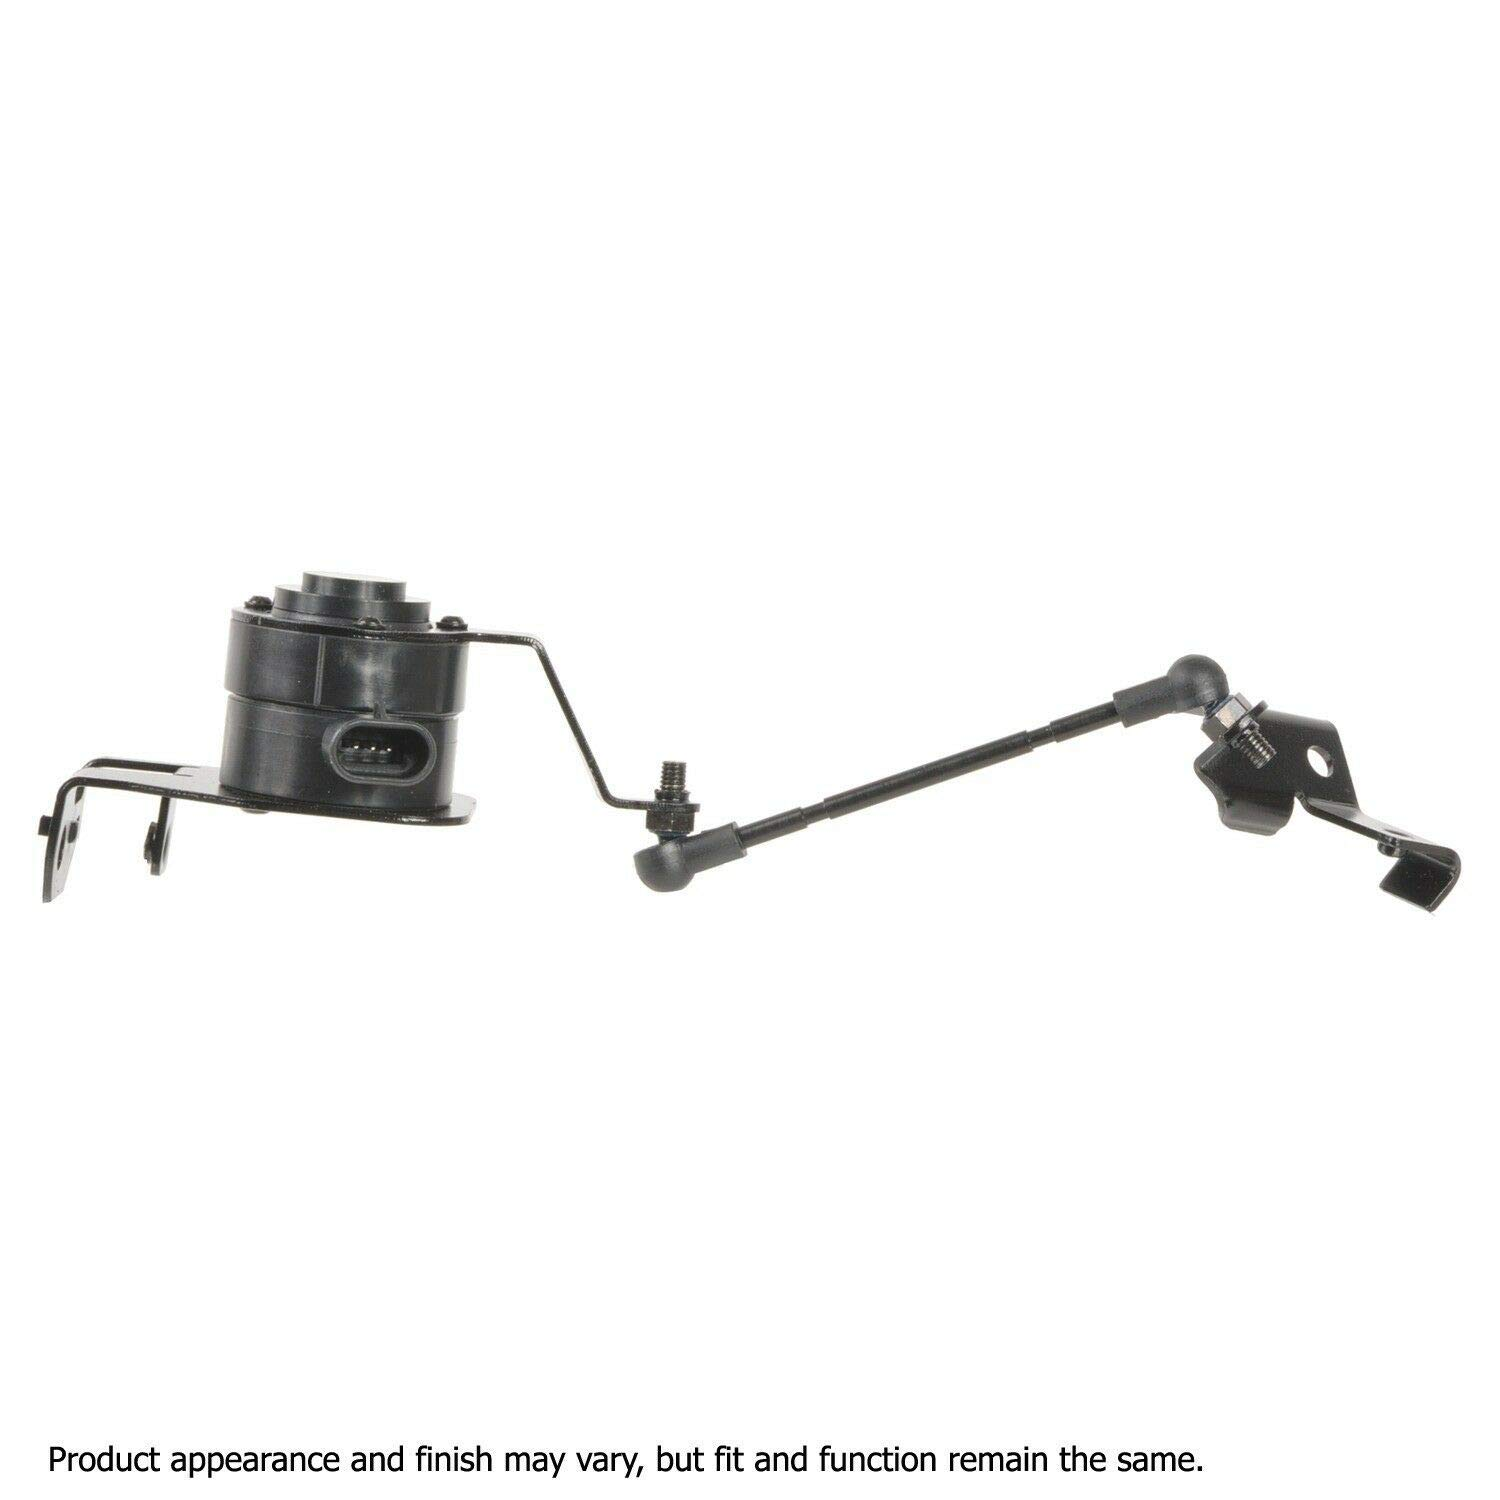 A1 Cardone 4J-0003HS Remanufactured Suspension Ride Height Sensor by A1 Cardone (Image #4)